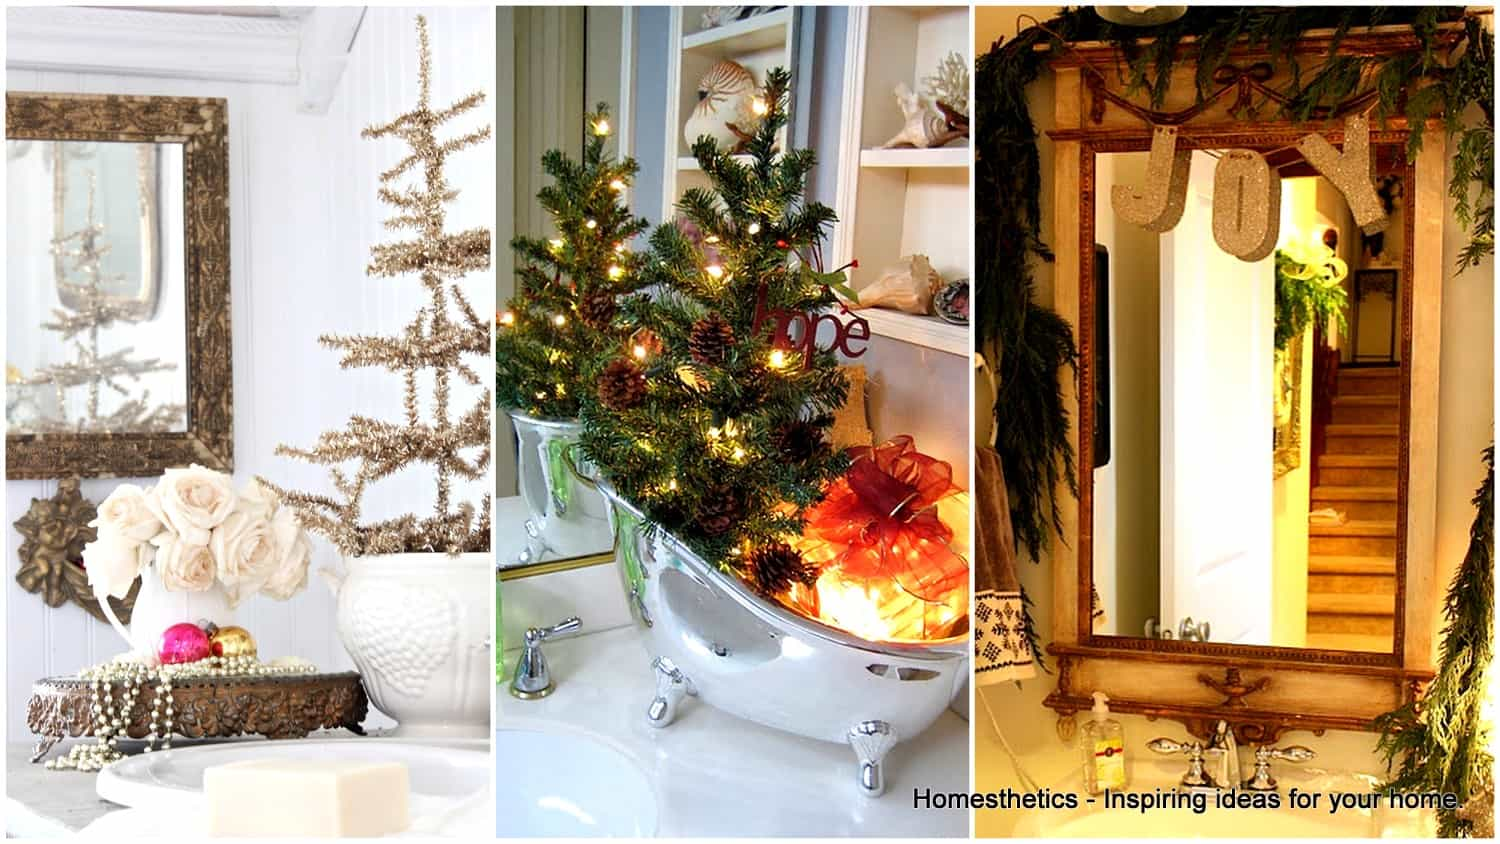 21 awesomely unexpected christmas bathroom decorations to realize | homesthetics - inspiring